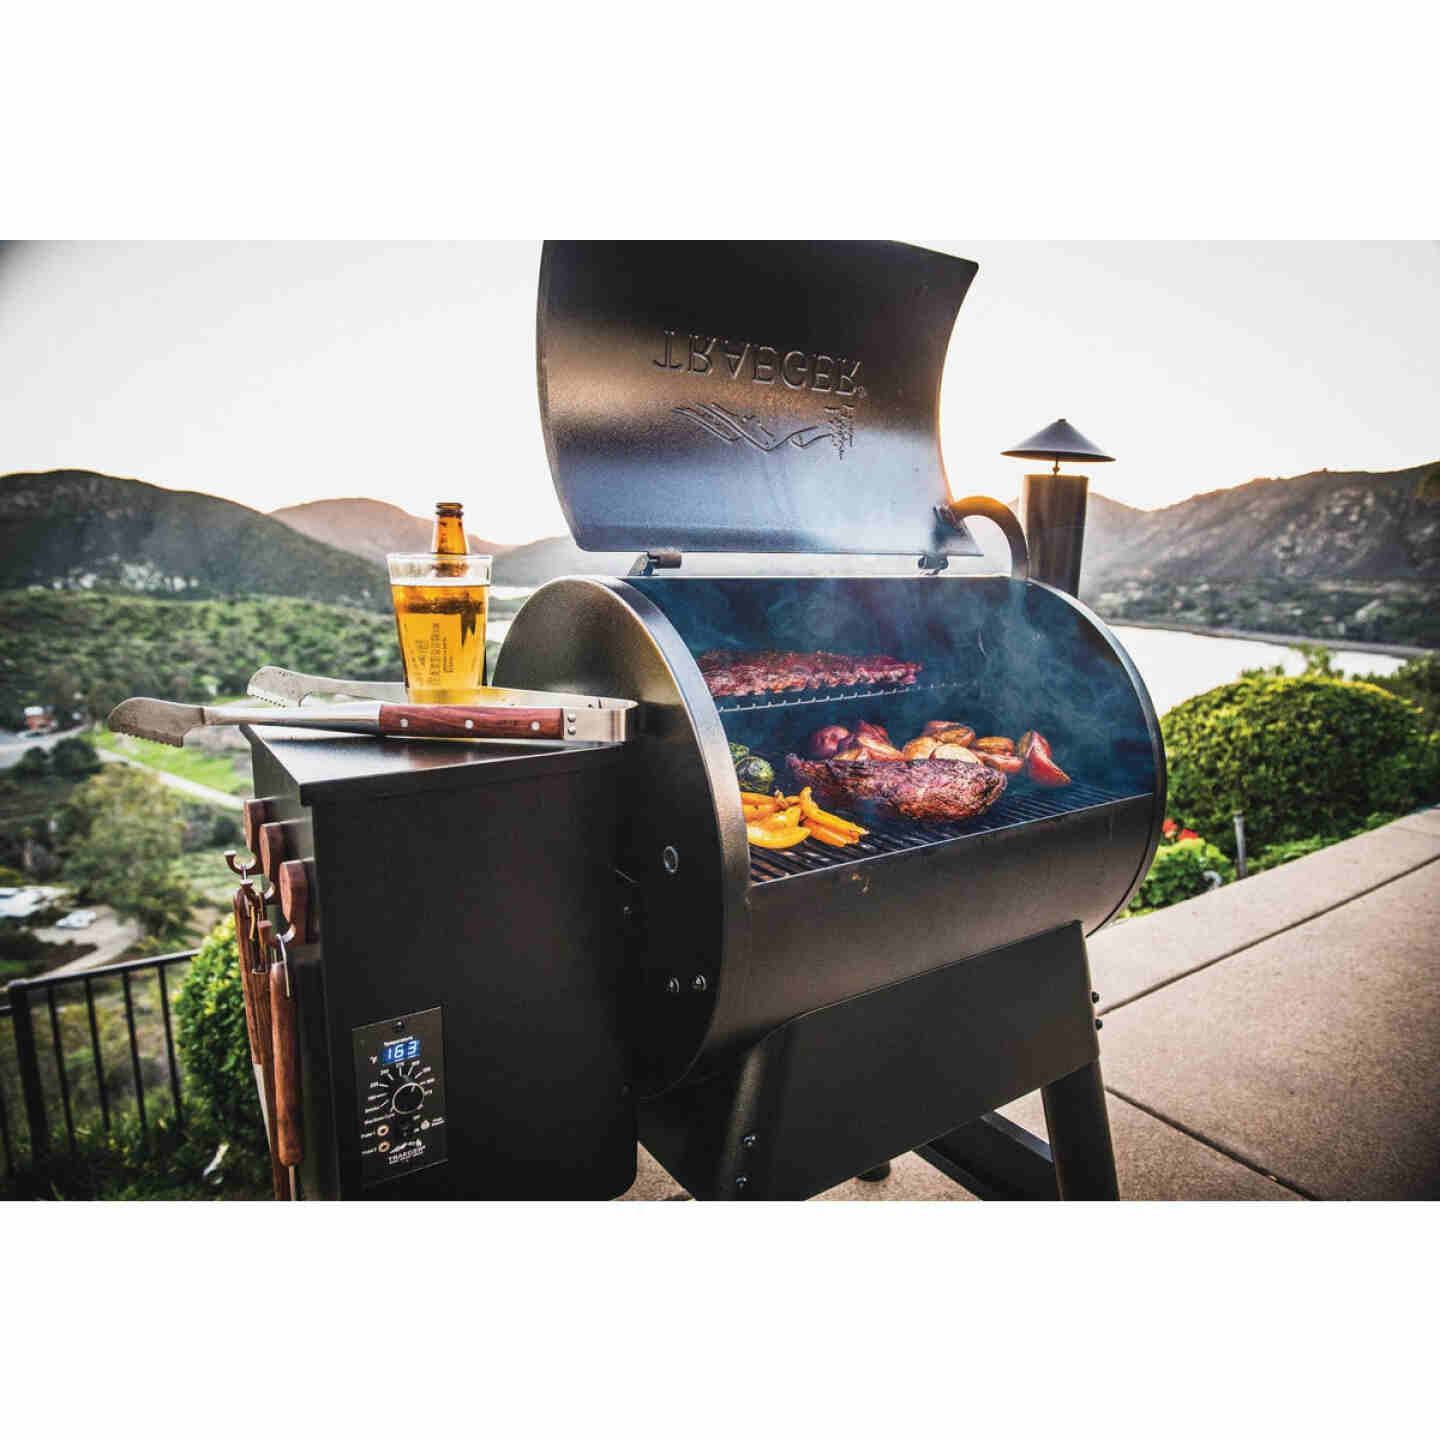 Traeger Pro Series 22 Bronze 20,000-BTU 572 Sq. In. Wood Pellet Grill Image 3